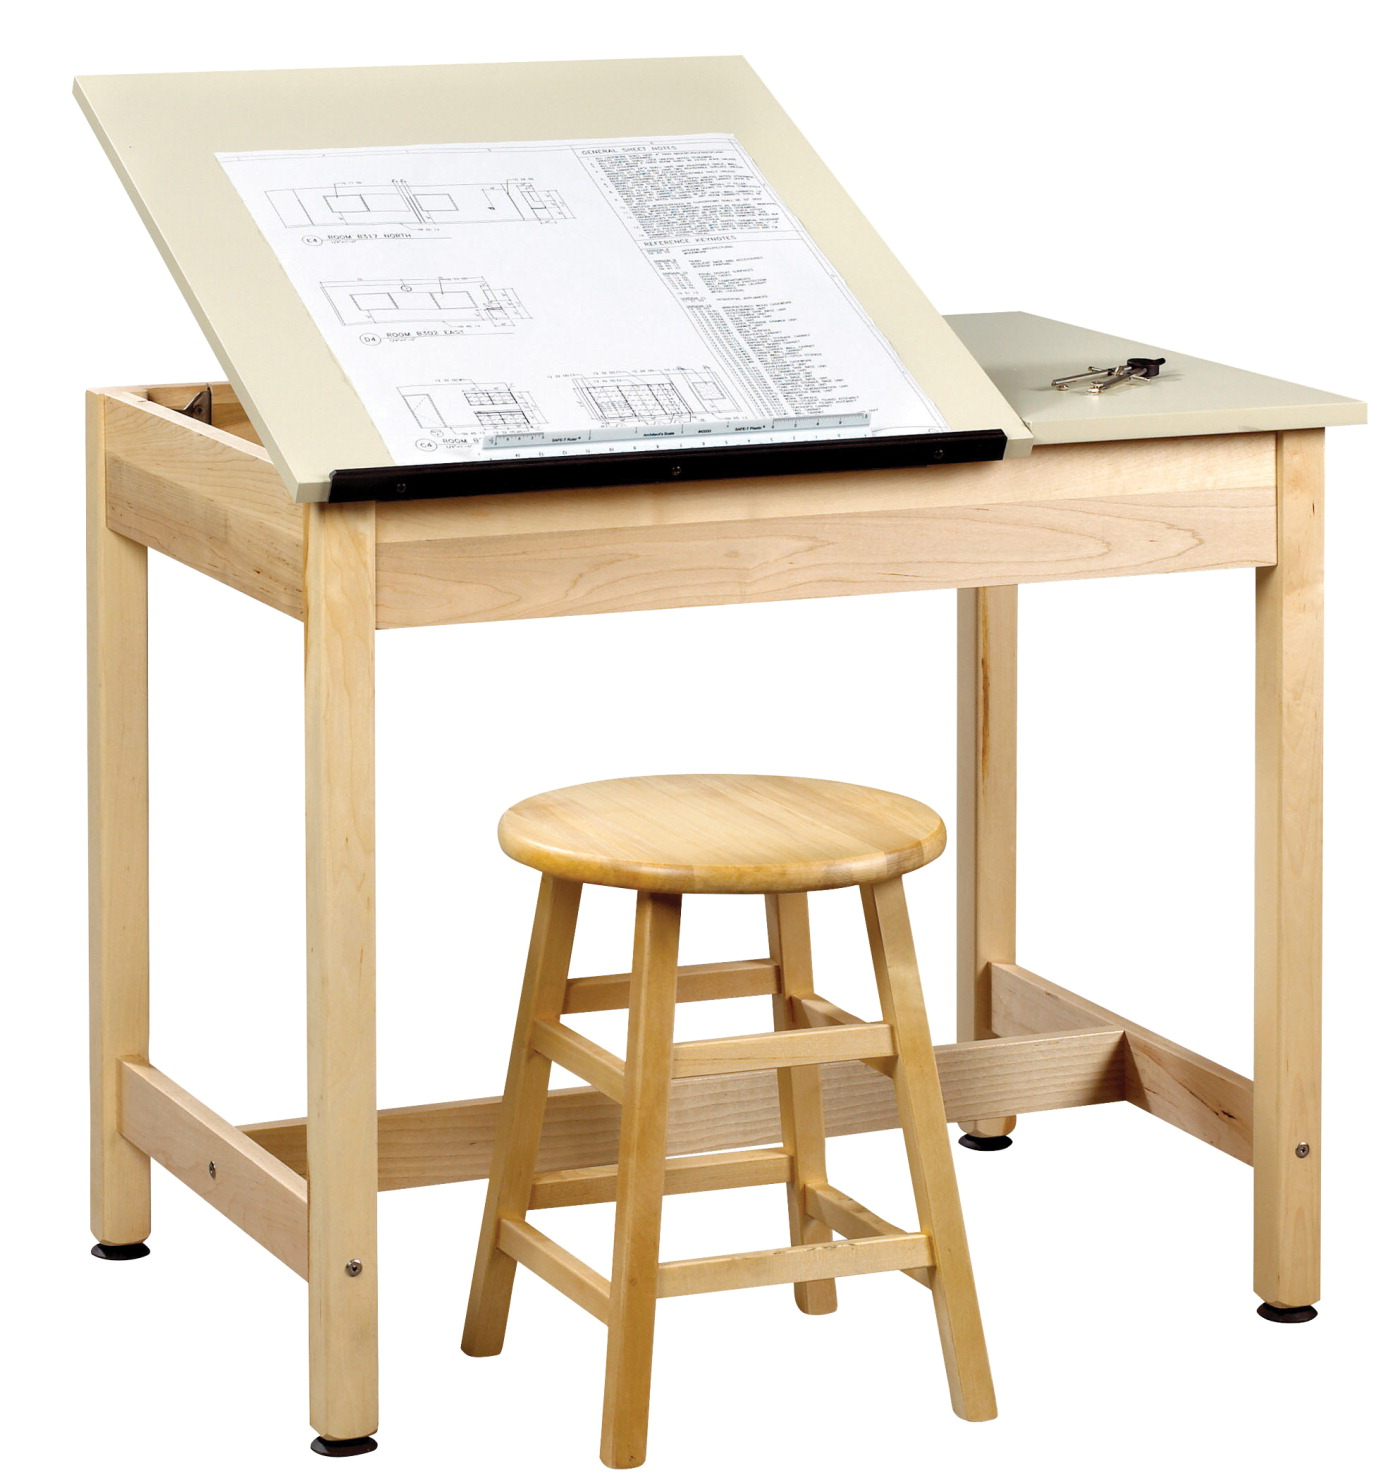 Diversified Woodcrafts 2-Piece Drafting Table, 36 x 24 x 30 Inches, Maple and Plastic